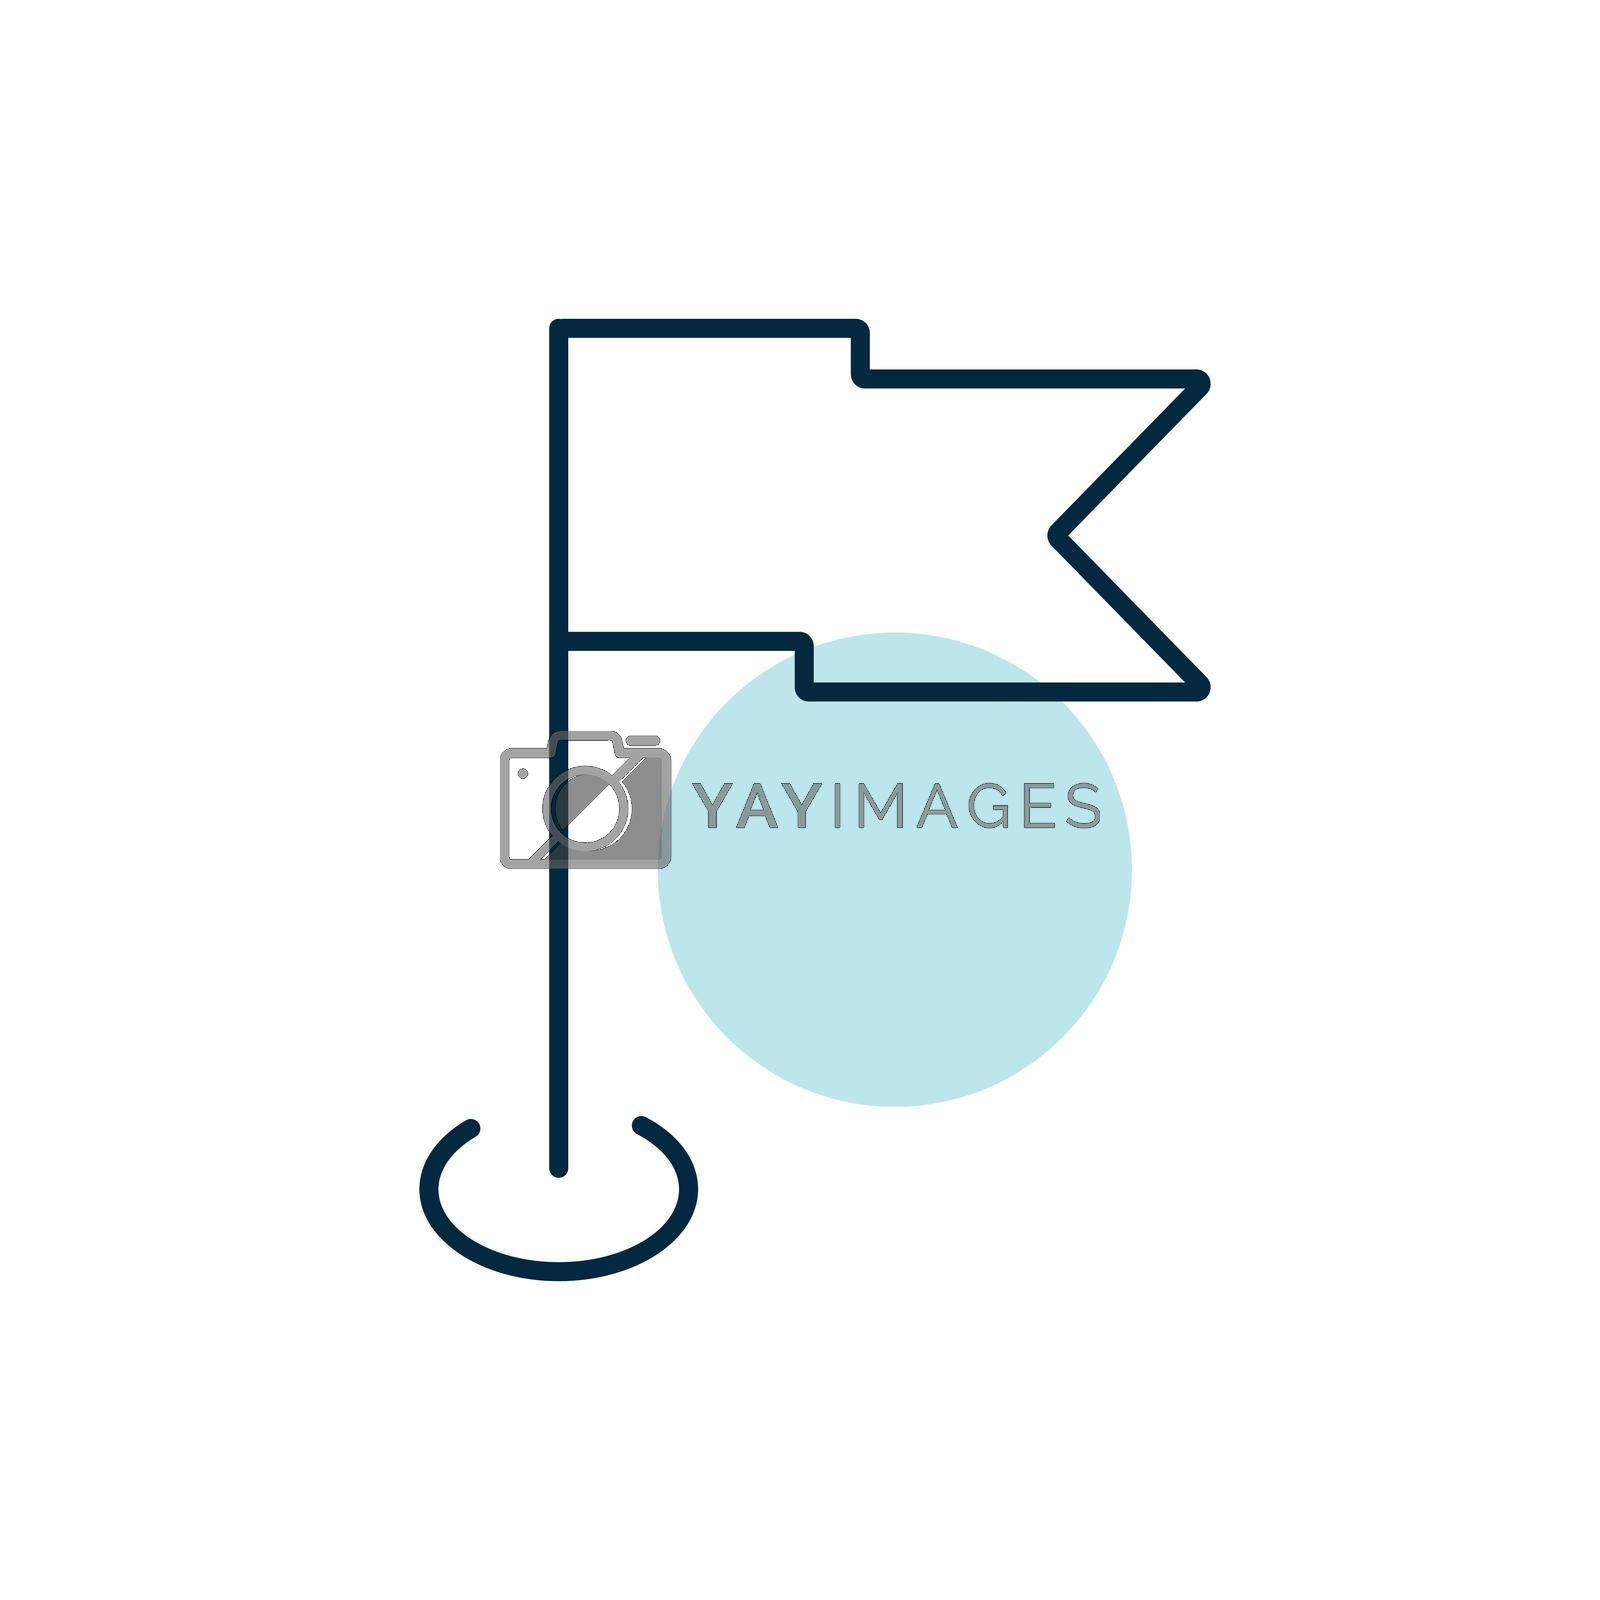 Flag GPS pin vector icon. Navigation sign. Graph symbol for travel and tourism web site and apps design, logo, app, UI